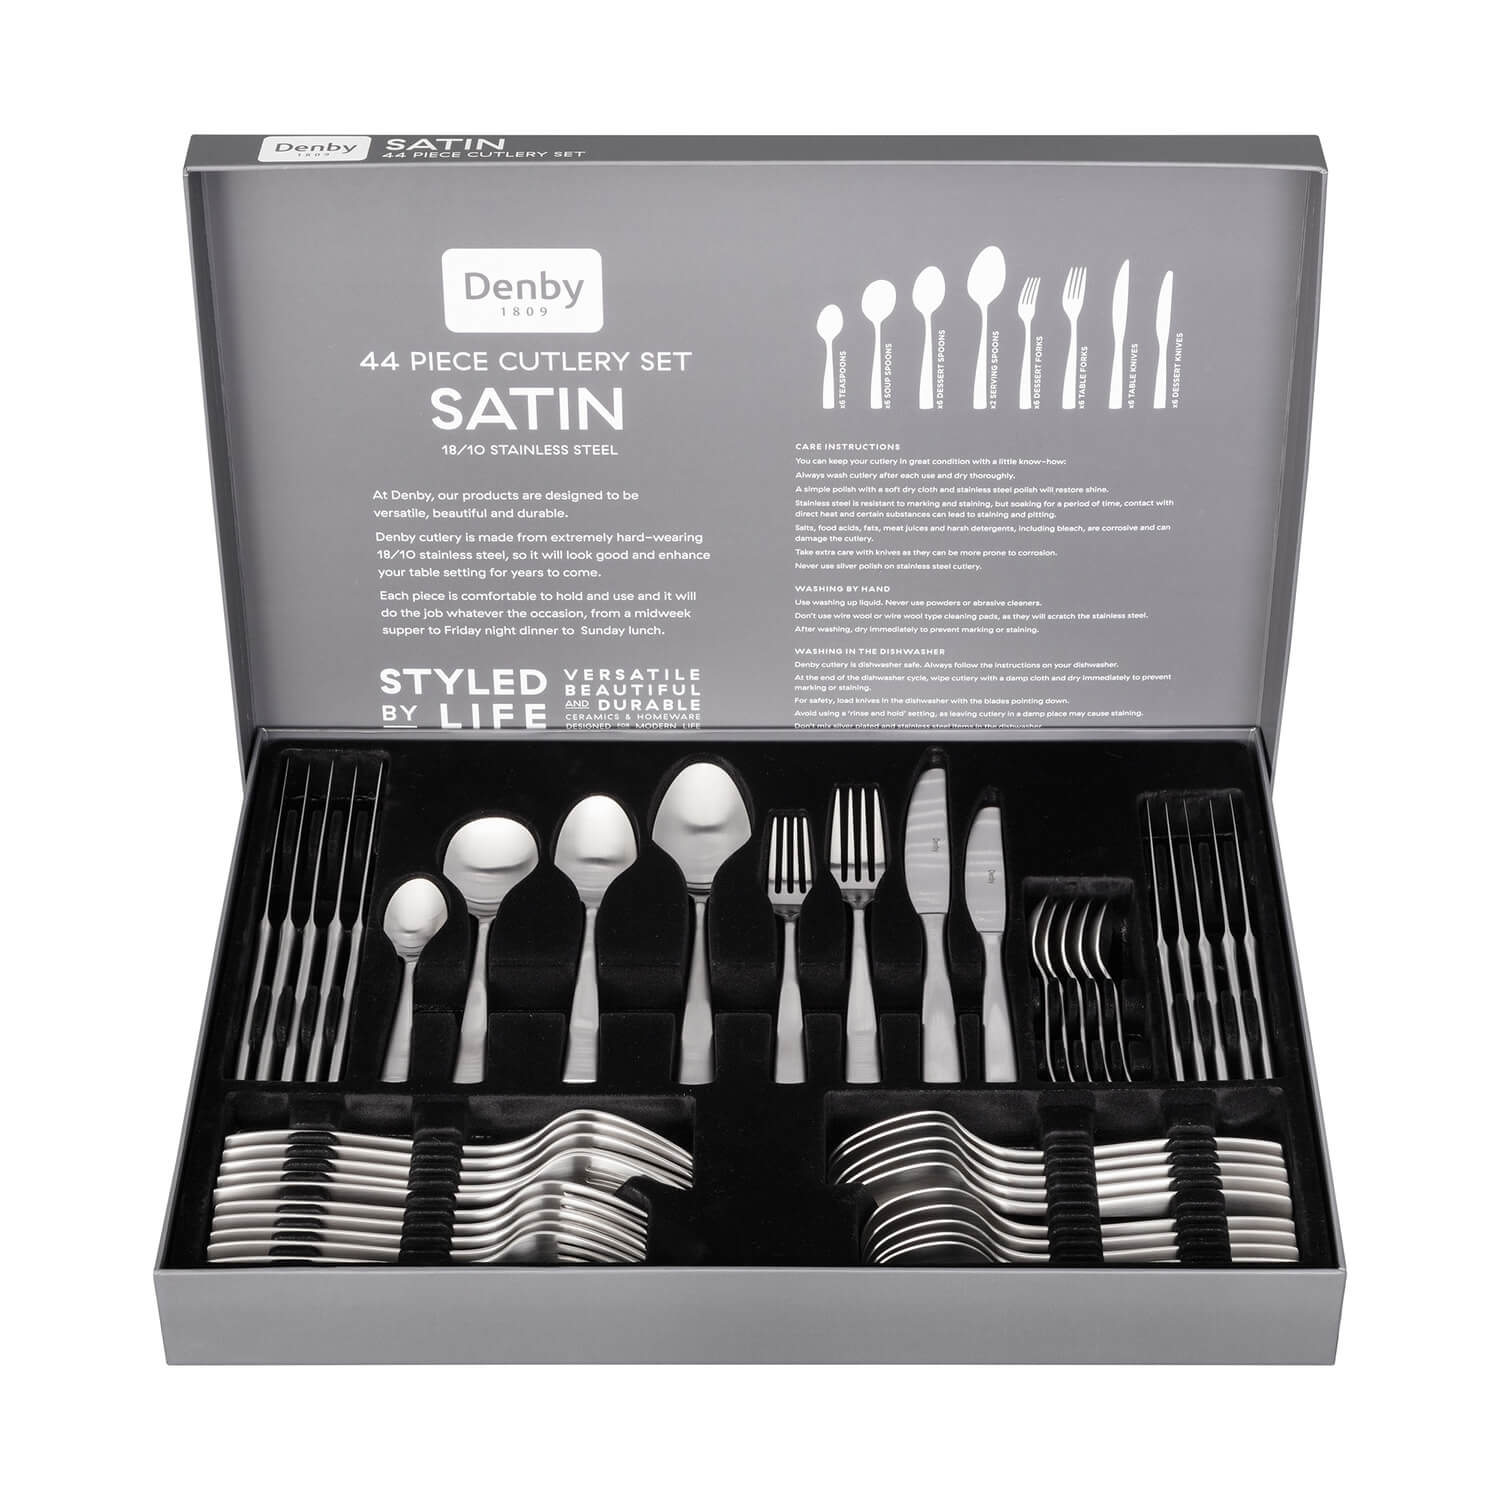 Image of Denby Satin 44 Piece Cutlery Set, Stainless Steel